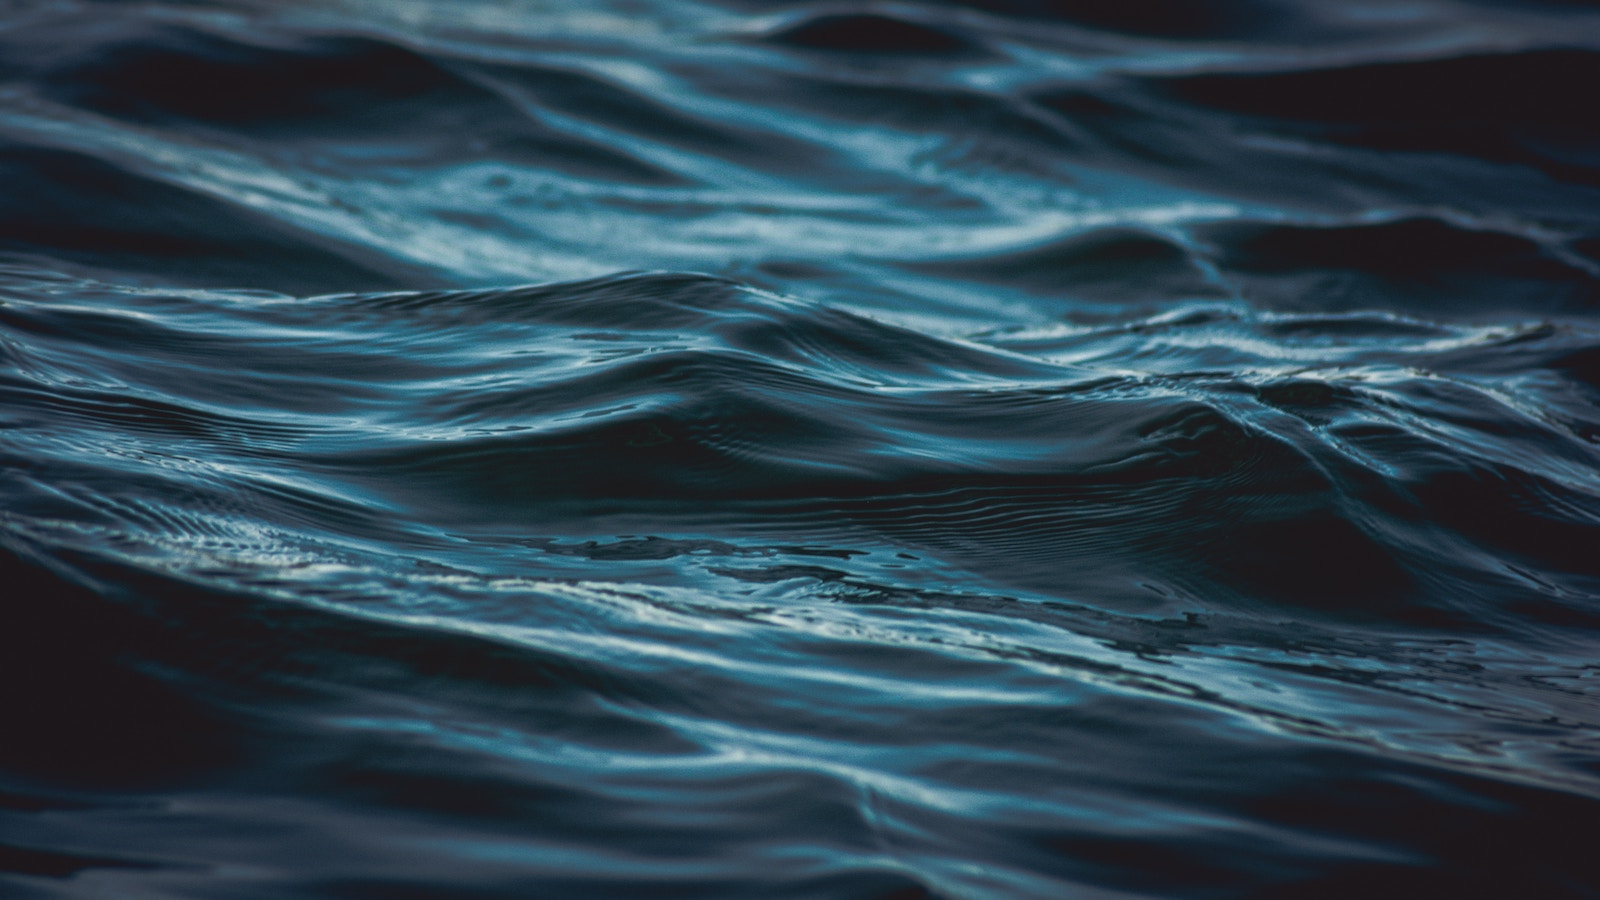 Ripples on ocean water